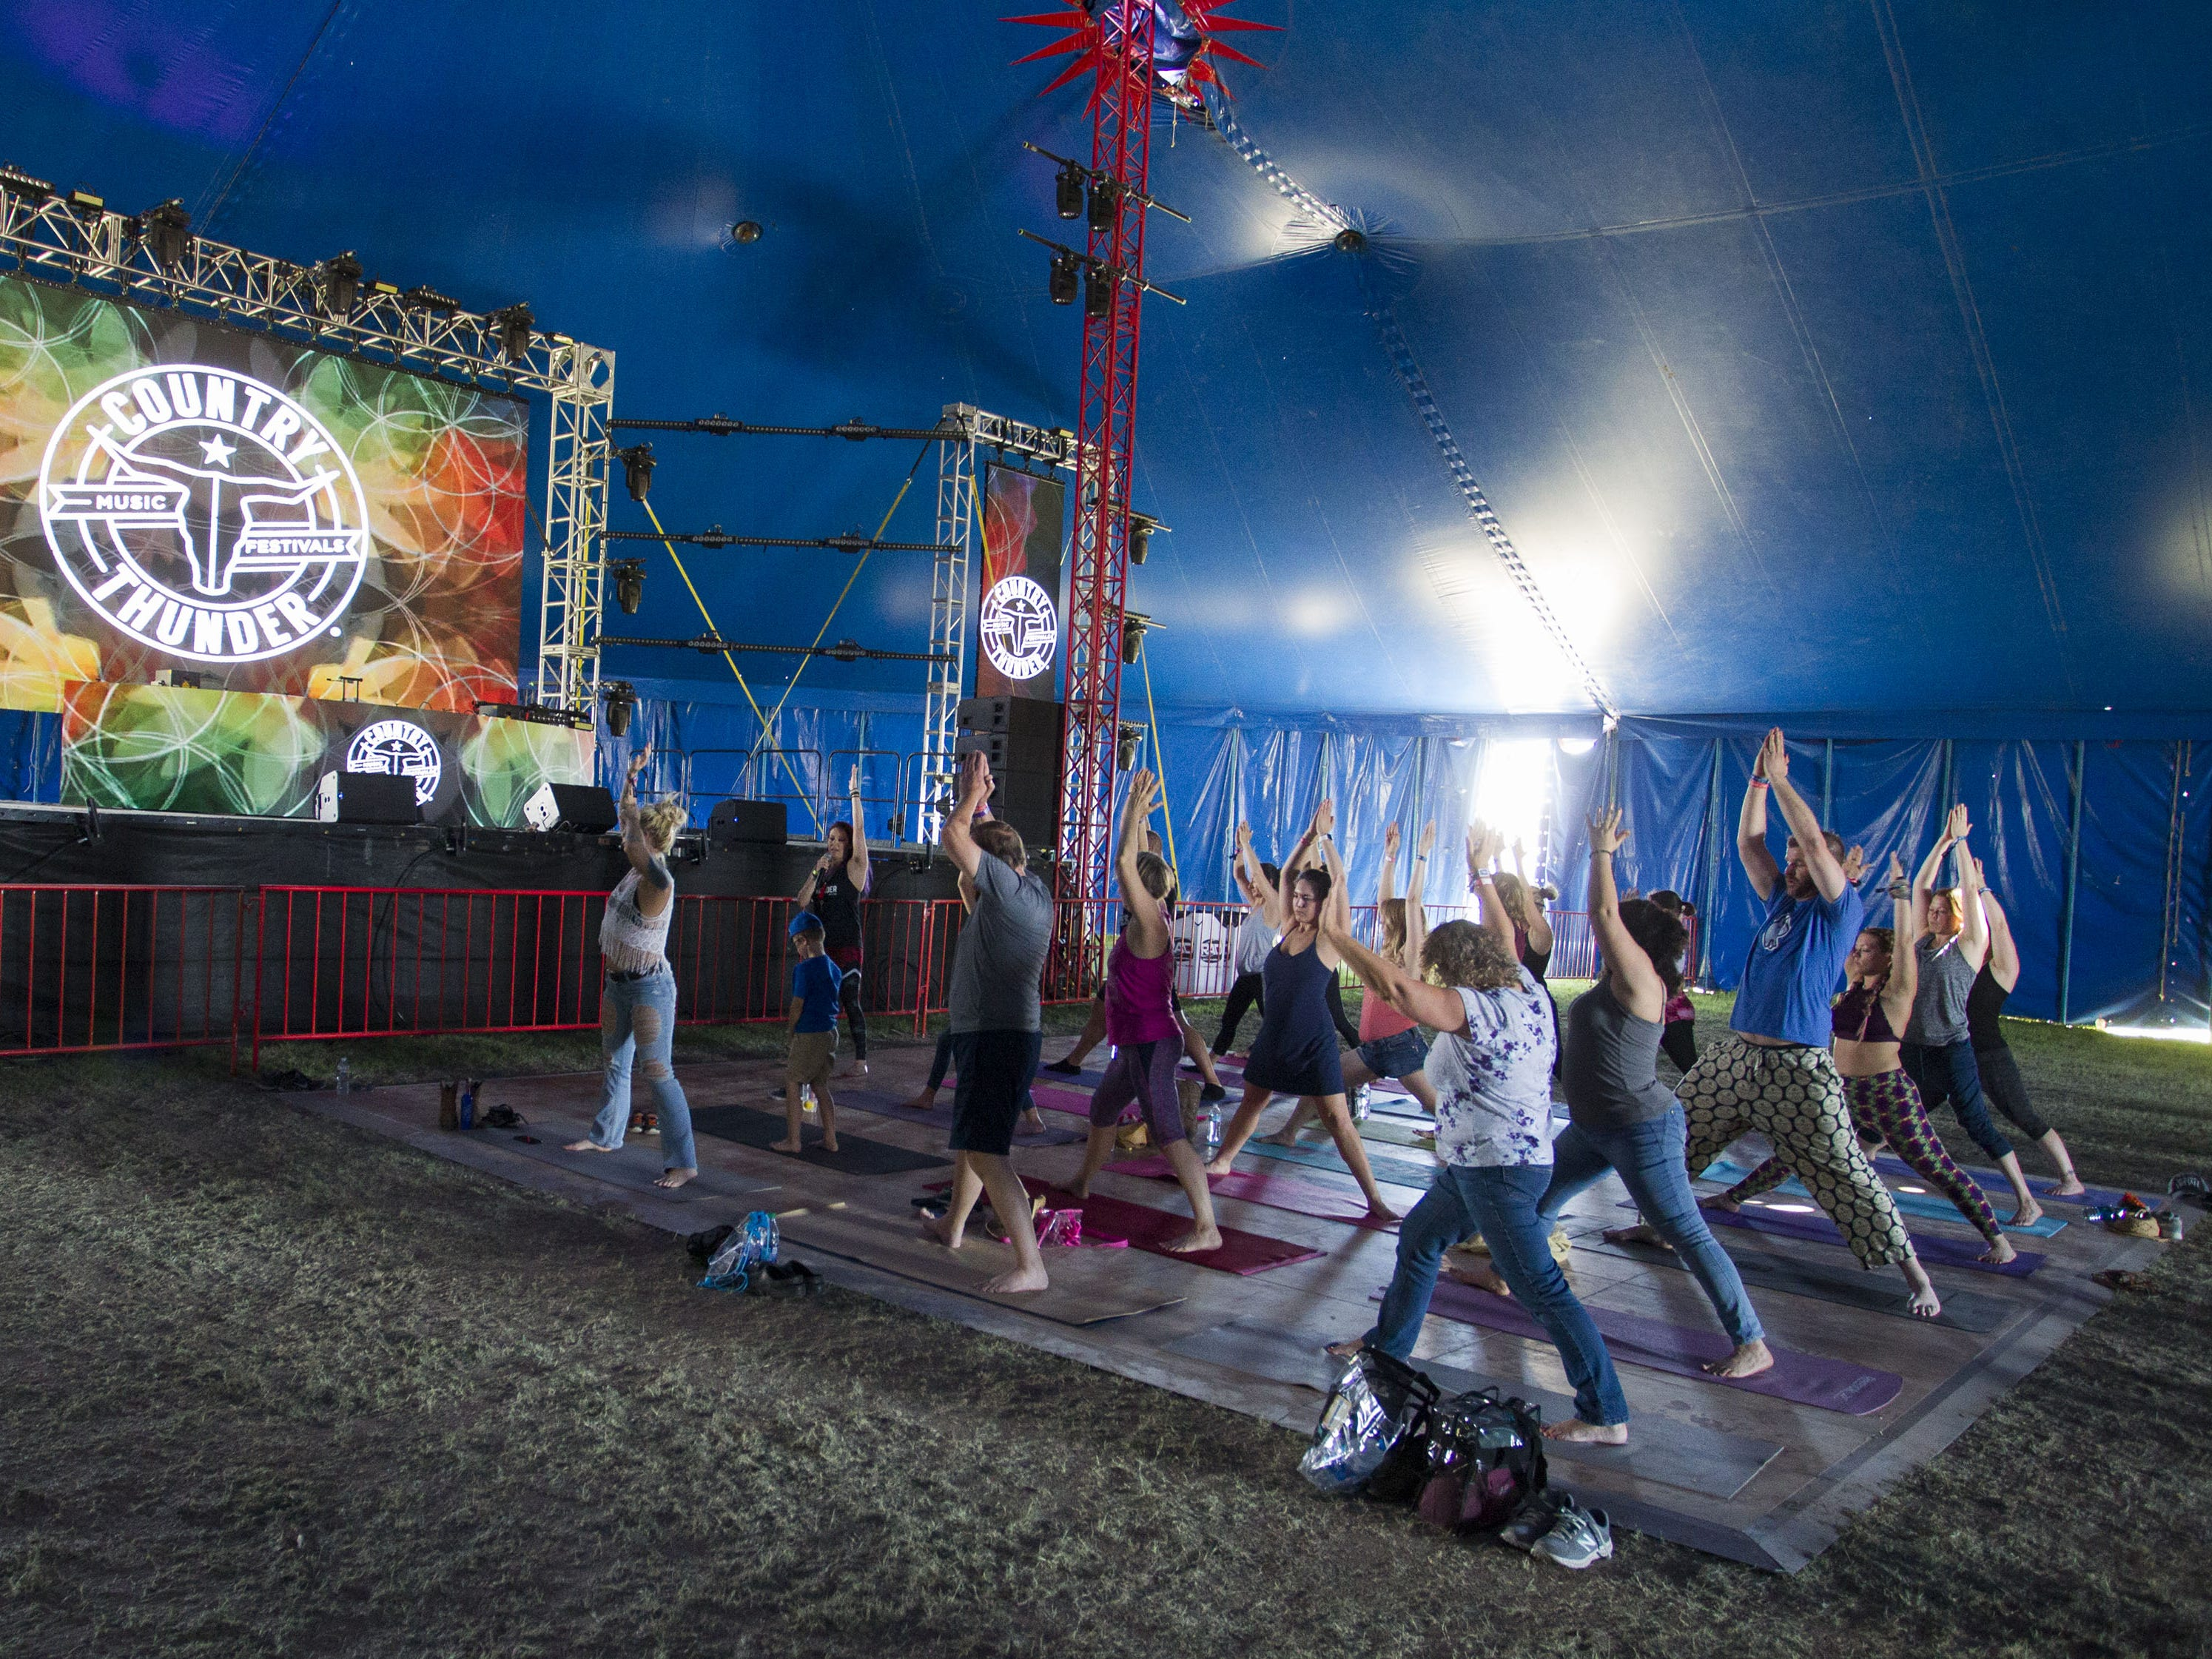 Festival-goers practice yoga during a session at Country Thunder Arizona Saturday, April 13, 2019, in Florence, Ariz.